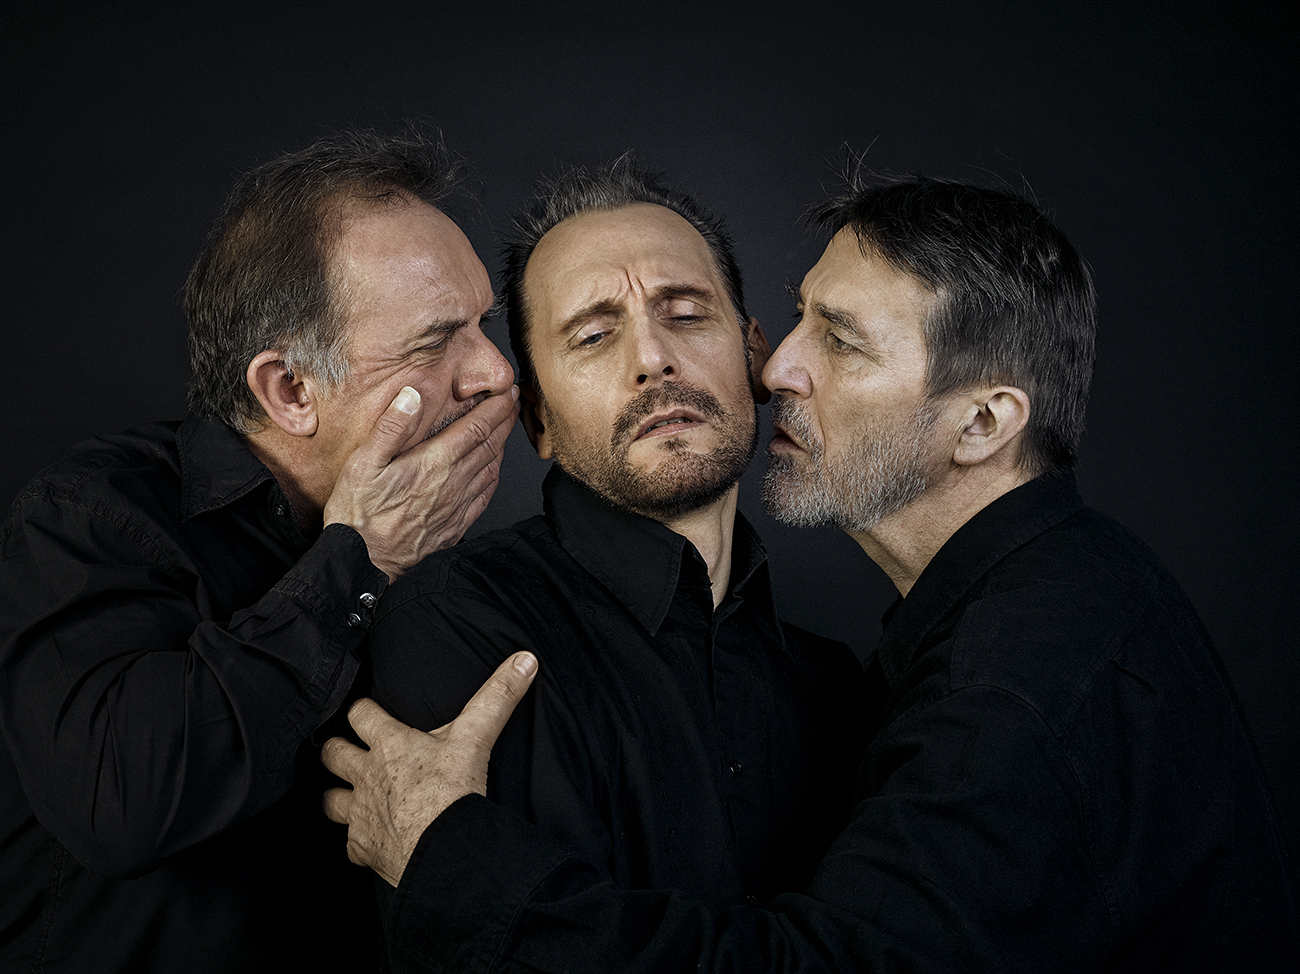 David Bamber, Julian Bleach, Ciarán Hinds (Caravaggio Recreation) Rory Lewis Photographer 2019